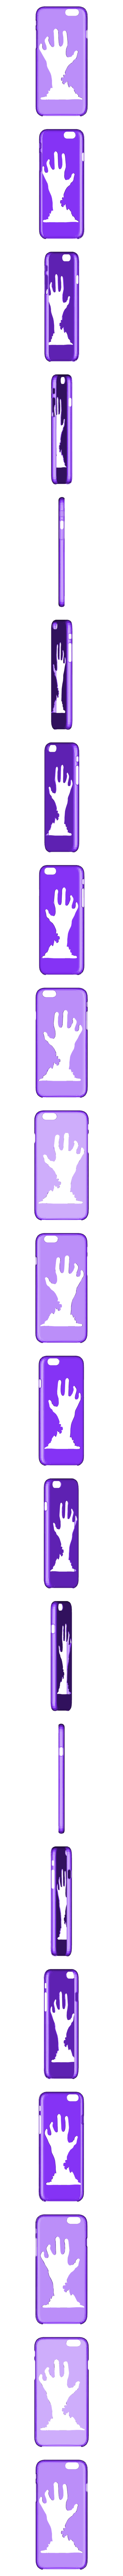 iPhone 6D Hand Case.stl Download STL file iPhone 6s Hand Case • 3D print object, eMBe85